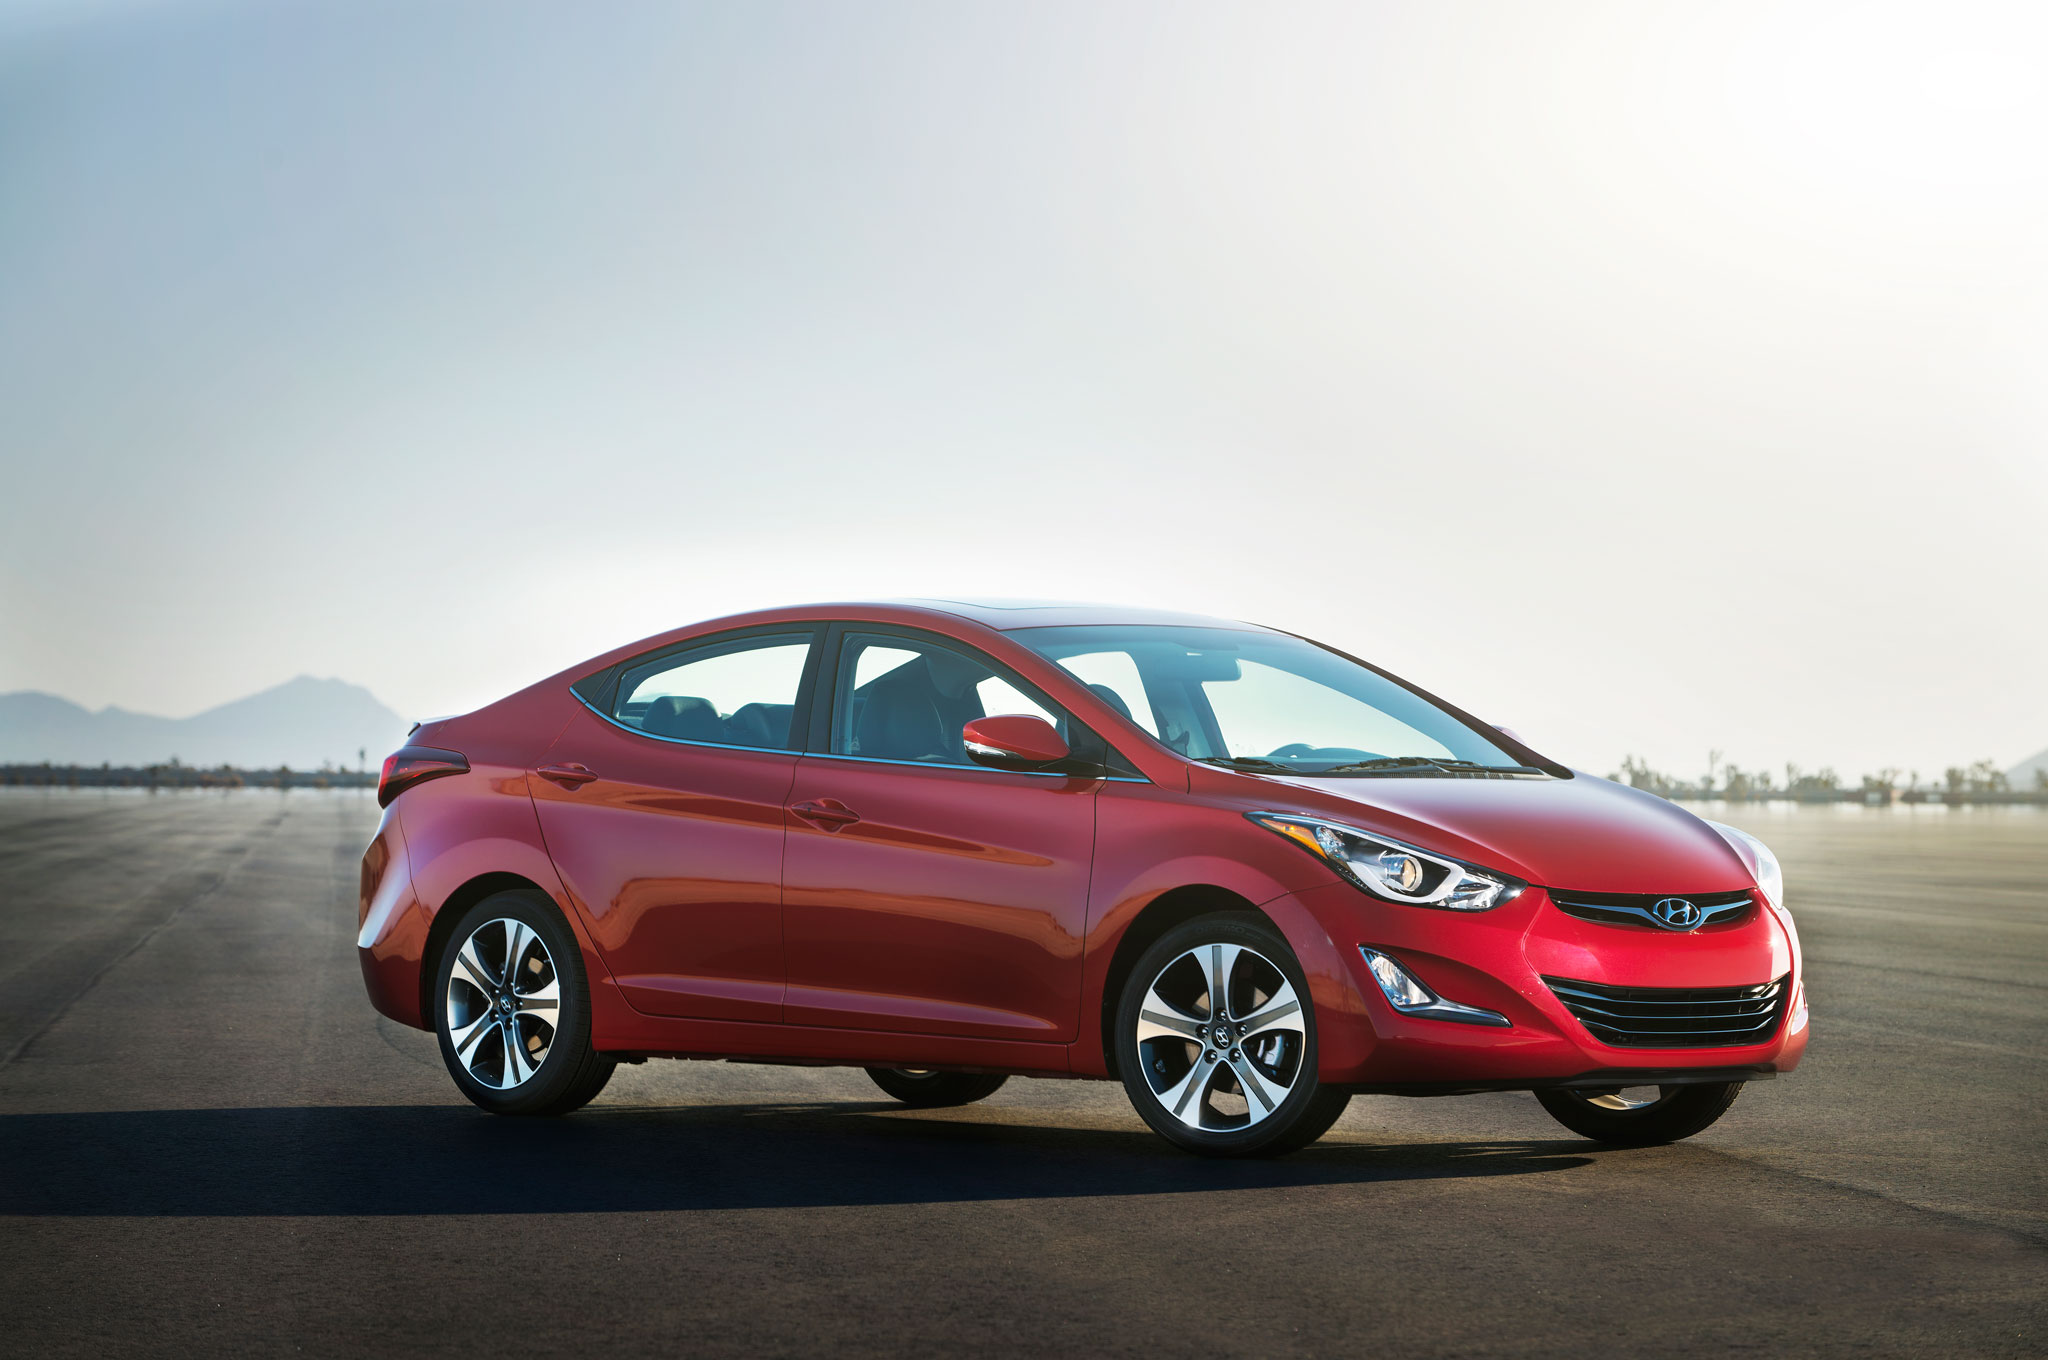 2014 Hyundai Elantra Sport Front Right Side View1